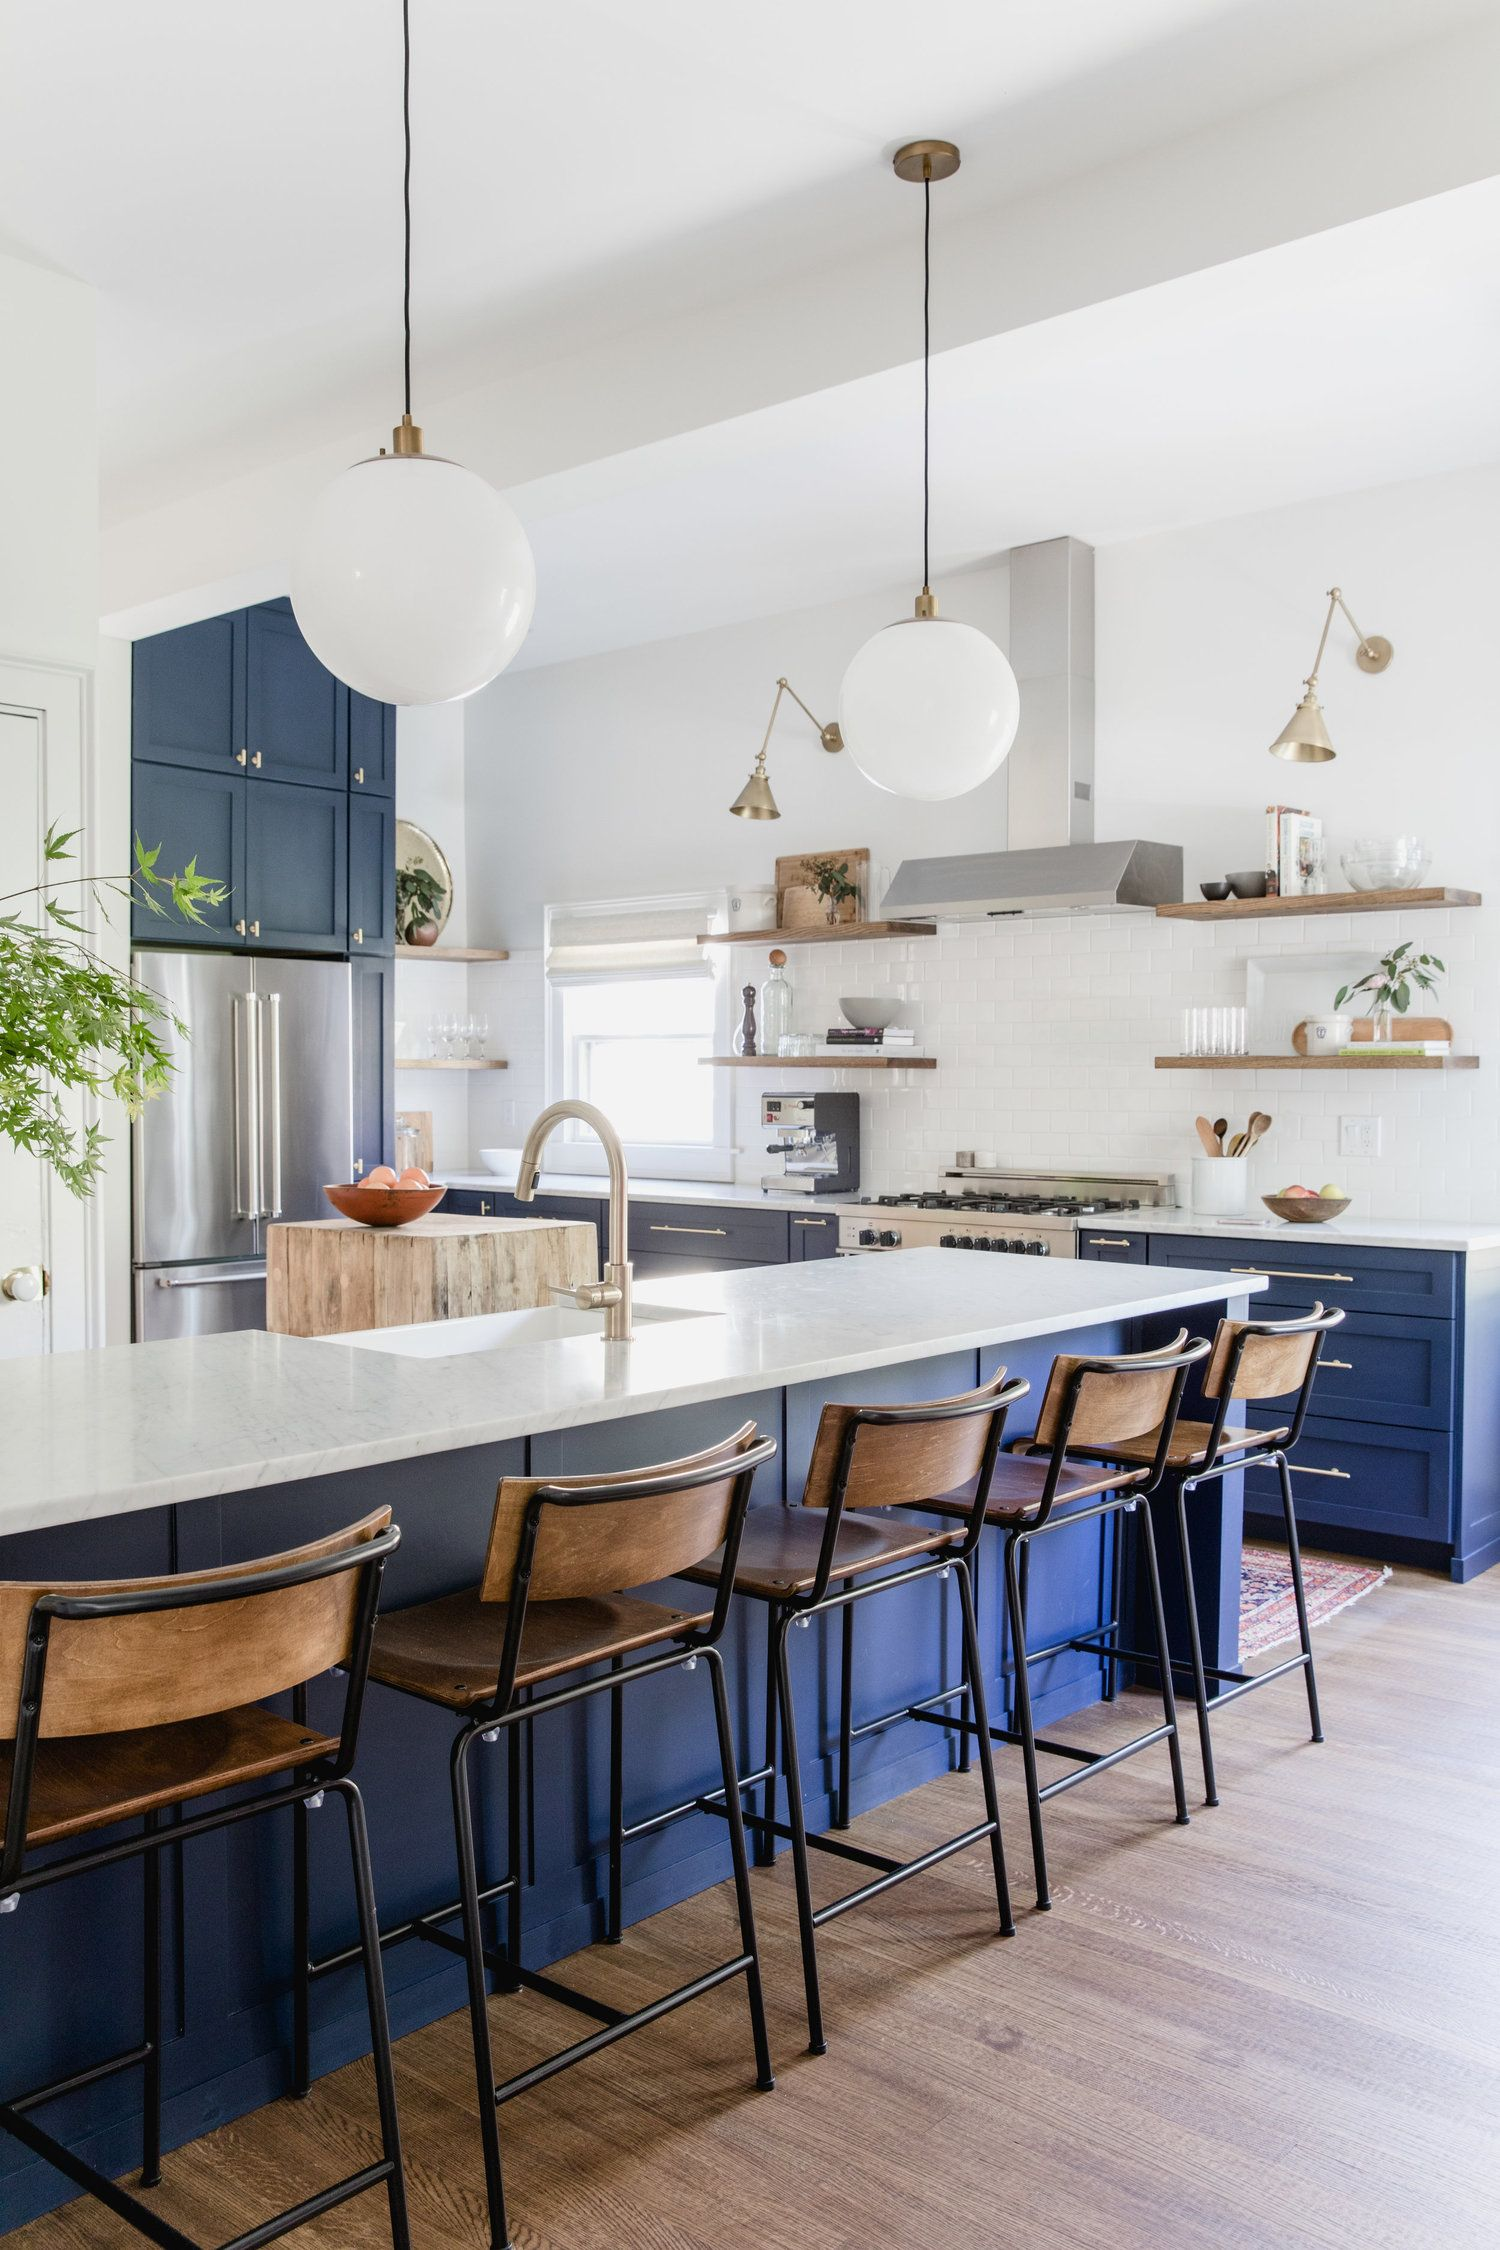 How To Choose The Right Bar Stools For Your Kitchen Island Or Peninsula Small Apartment Kitchen Eclectic Kitchen Kitchen Interior